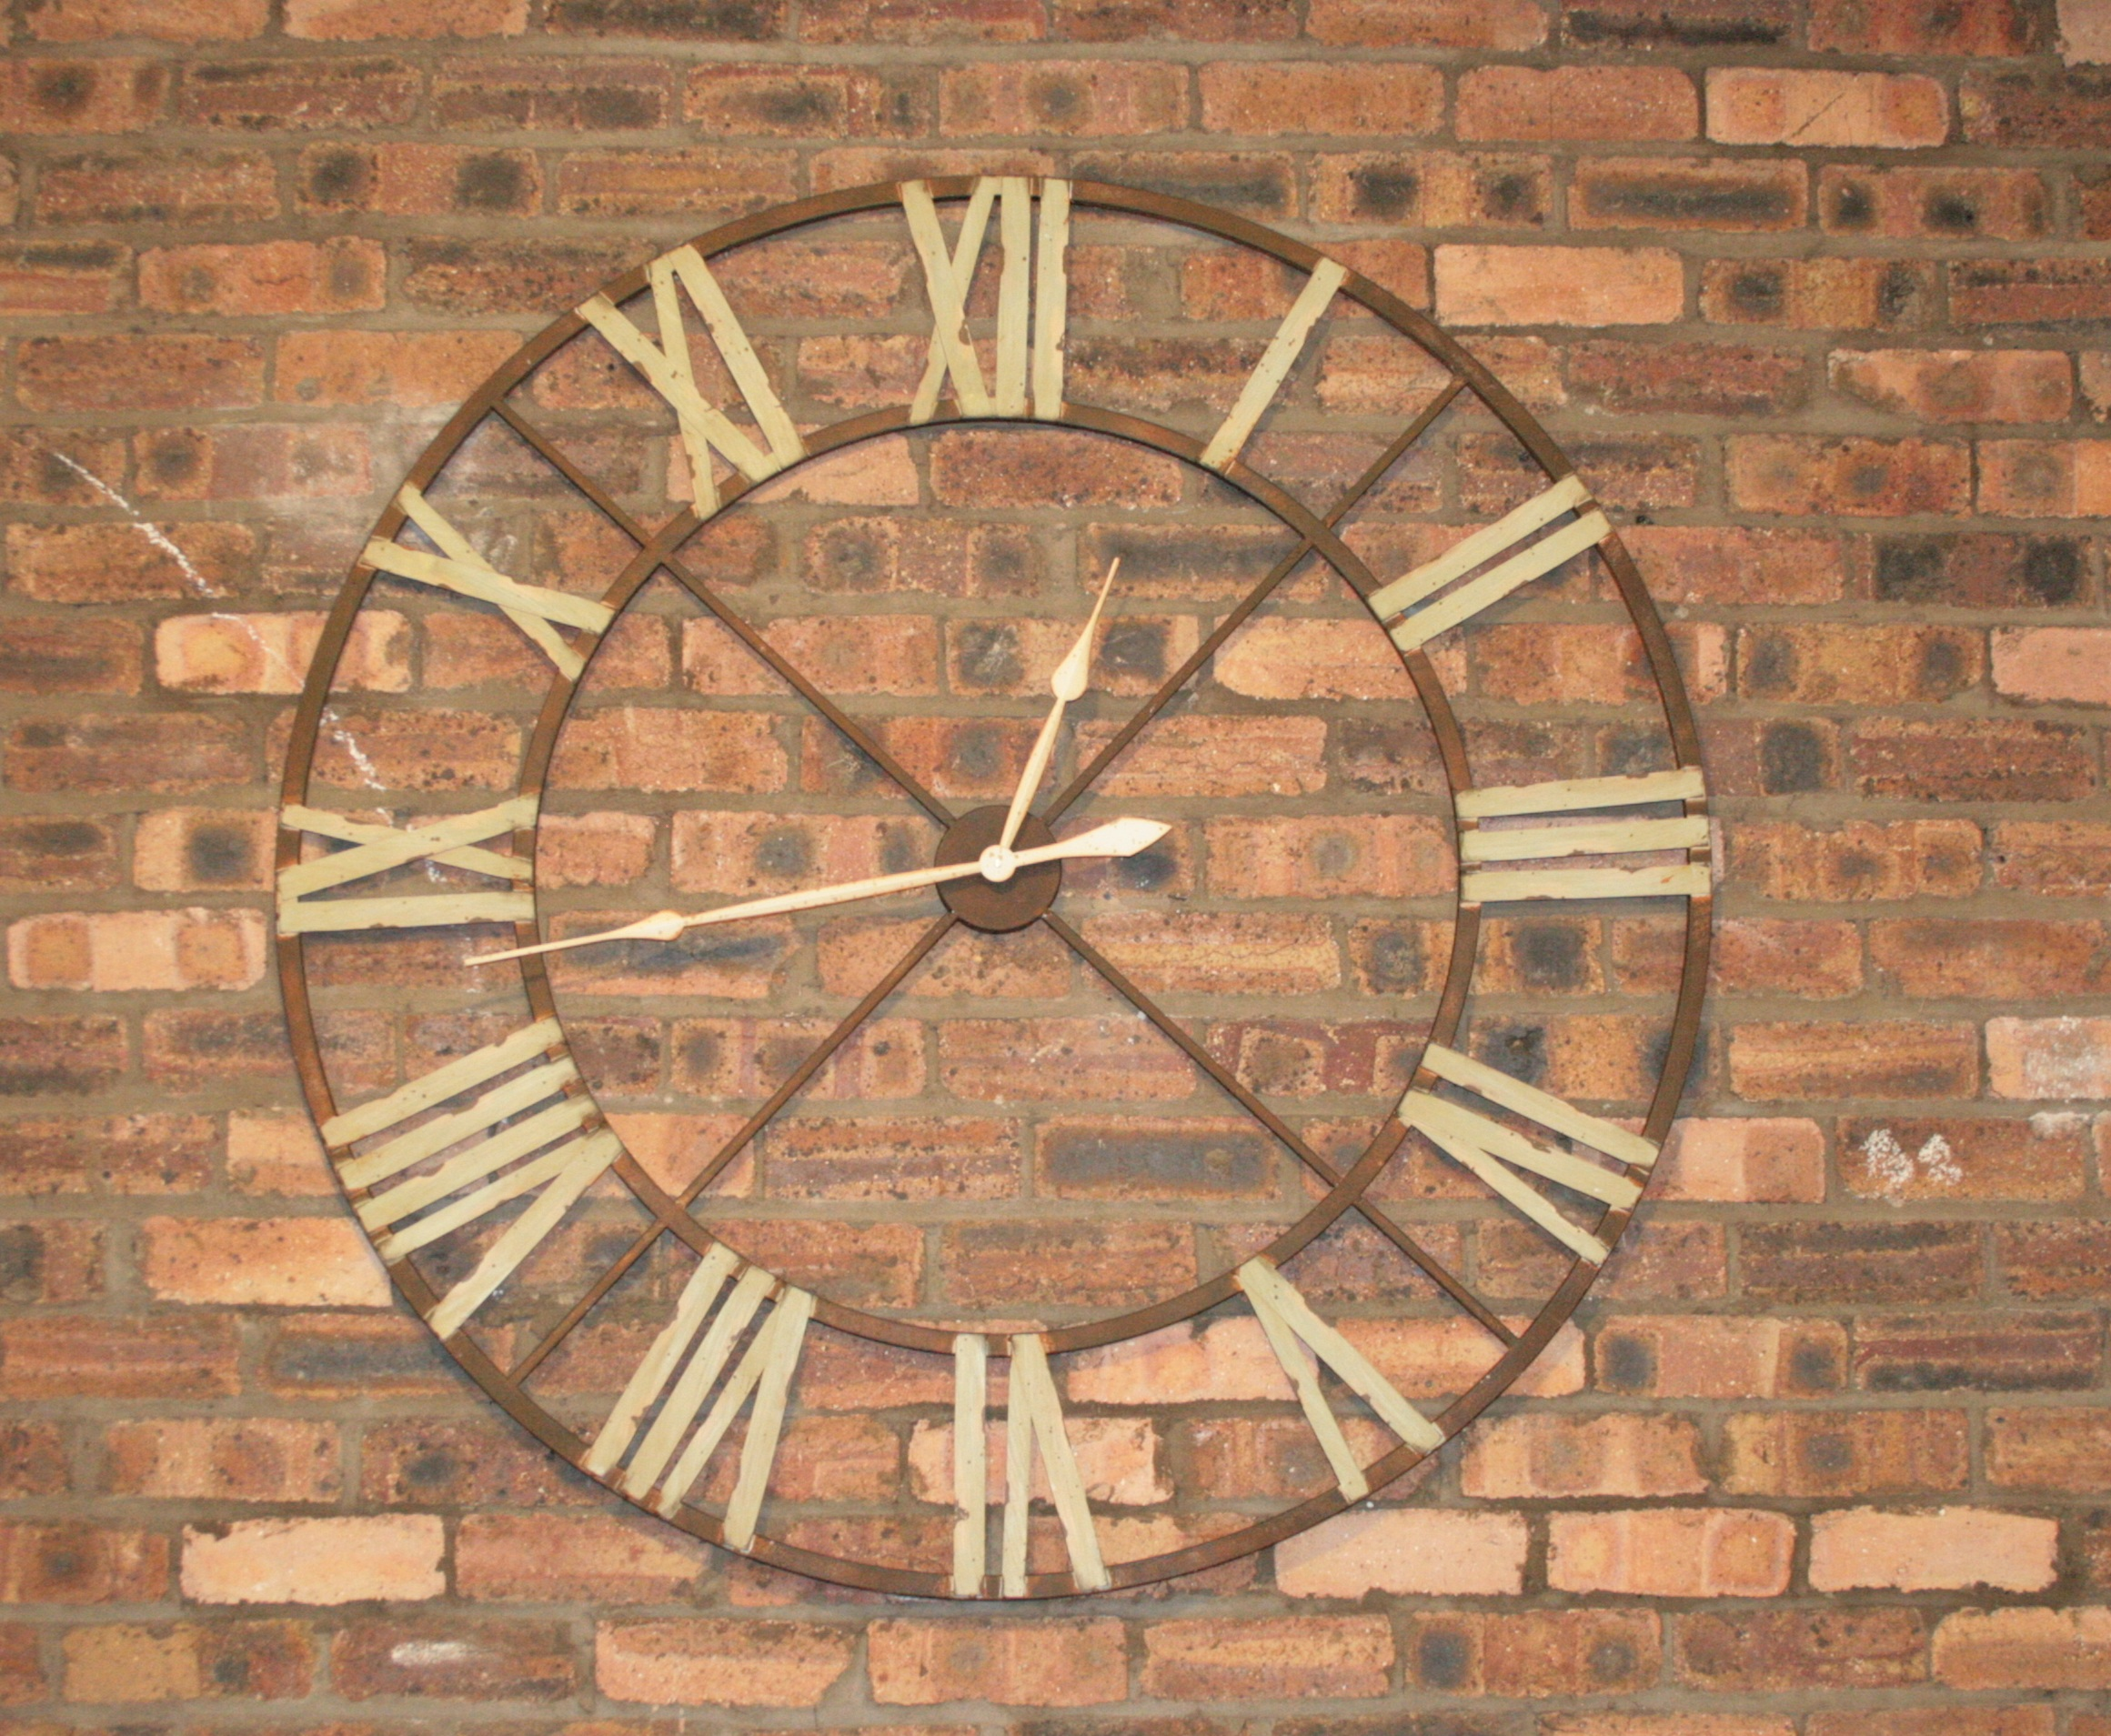 Big Clocks For Wall Large Iron Wall Clock With Roman Numerals Vintage